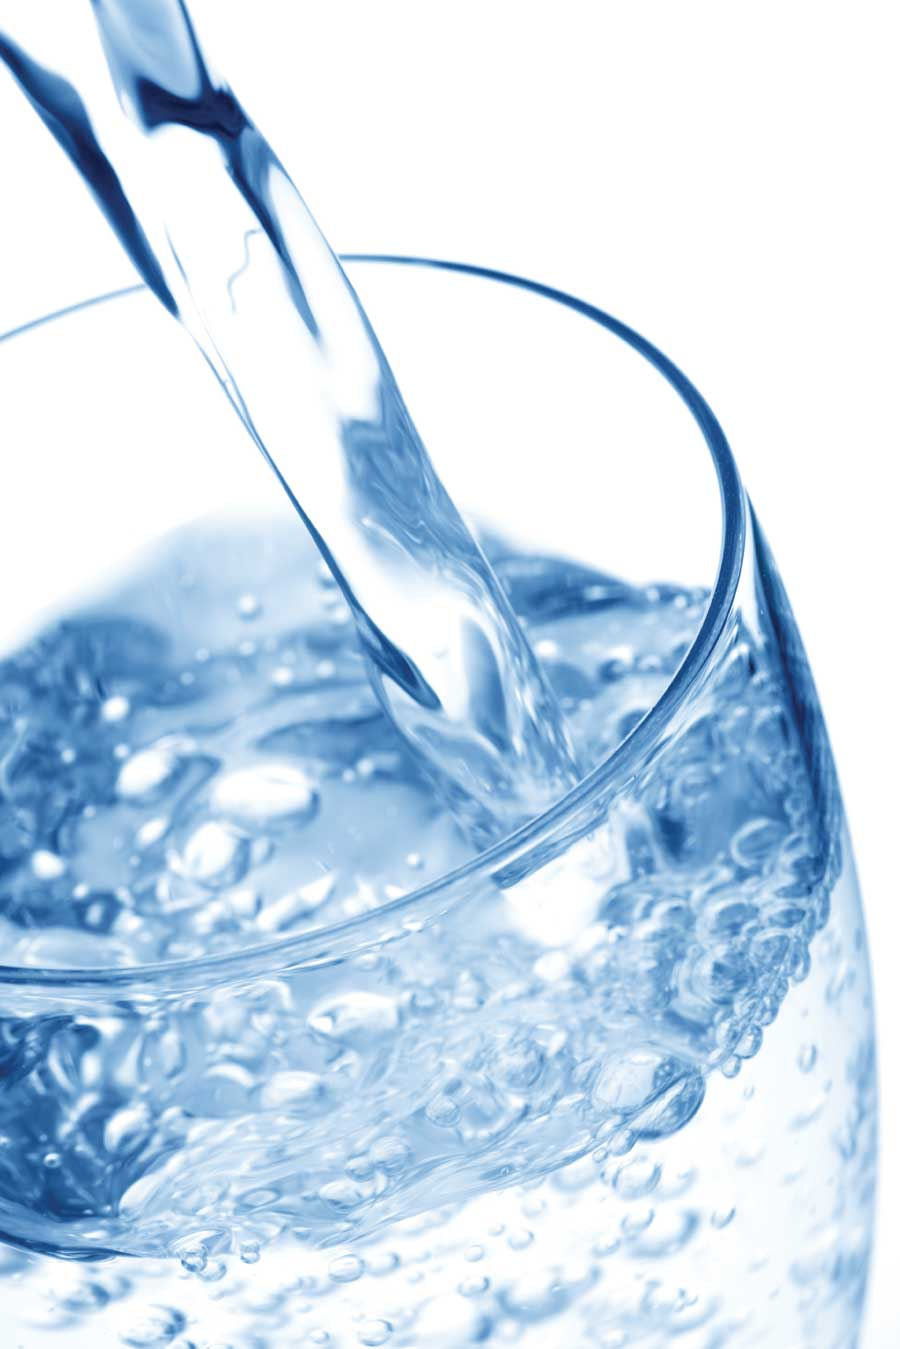 Higher Levels Of Urinary Fluoride >> Bladder Problems and Alkaline Water | Filtercon ...